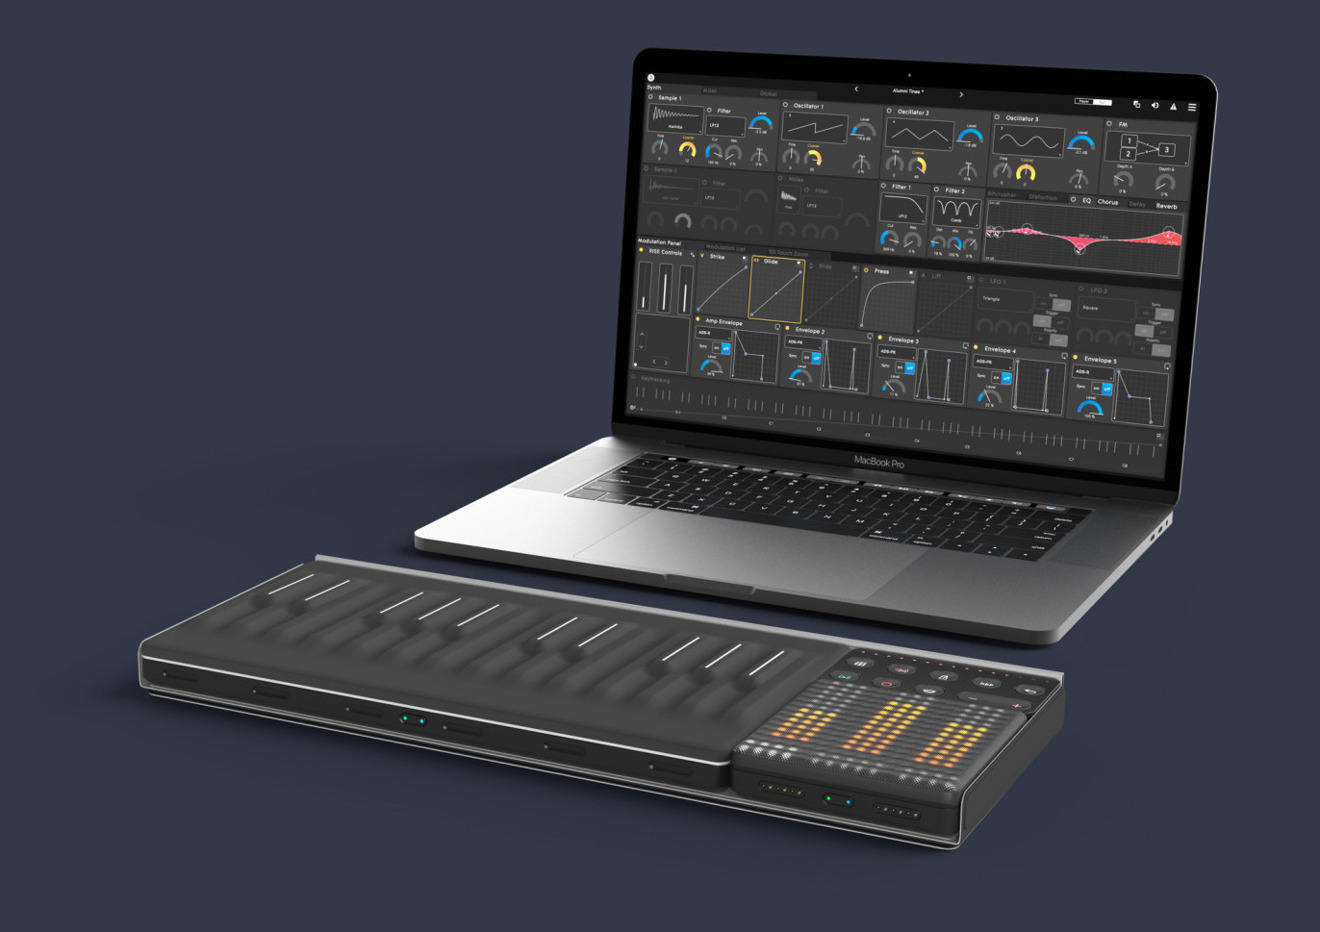 Roli Songmaker Kit works also with Mac